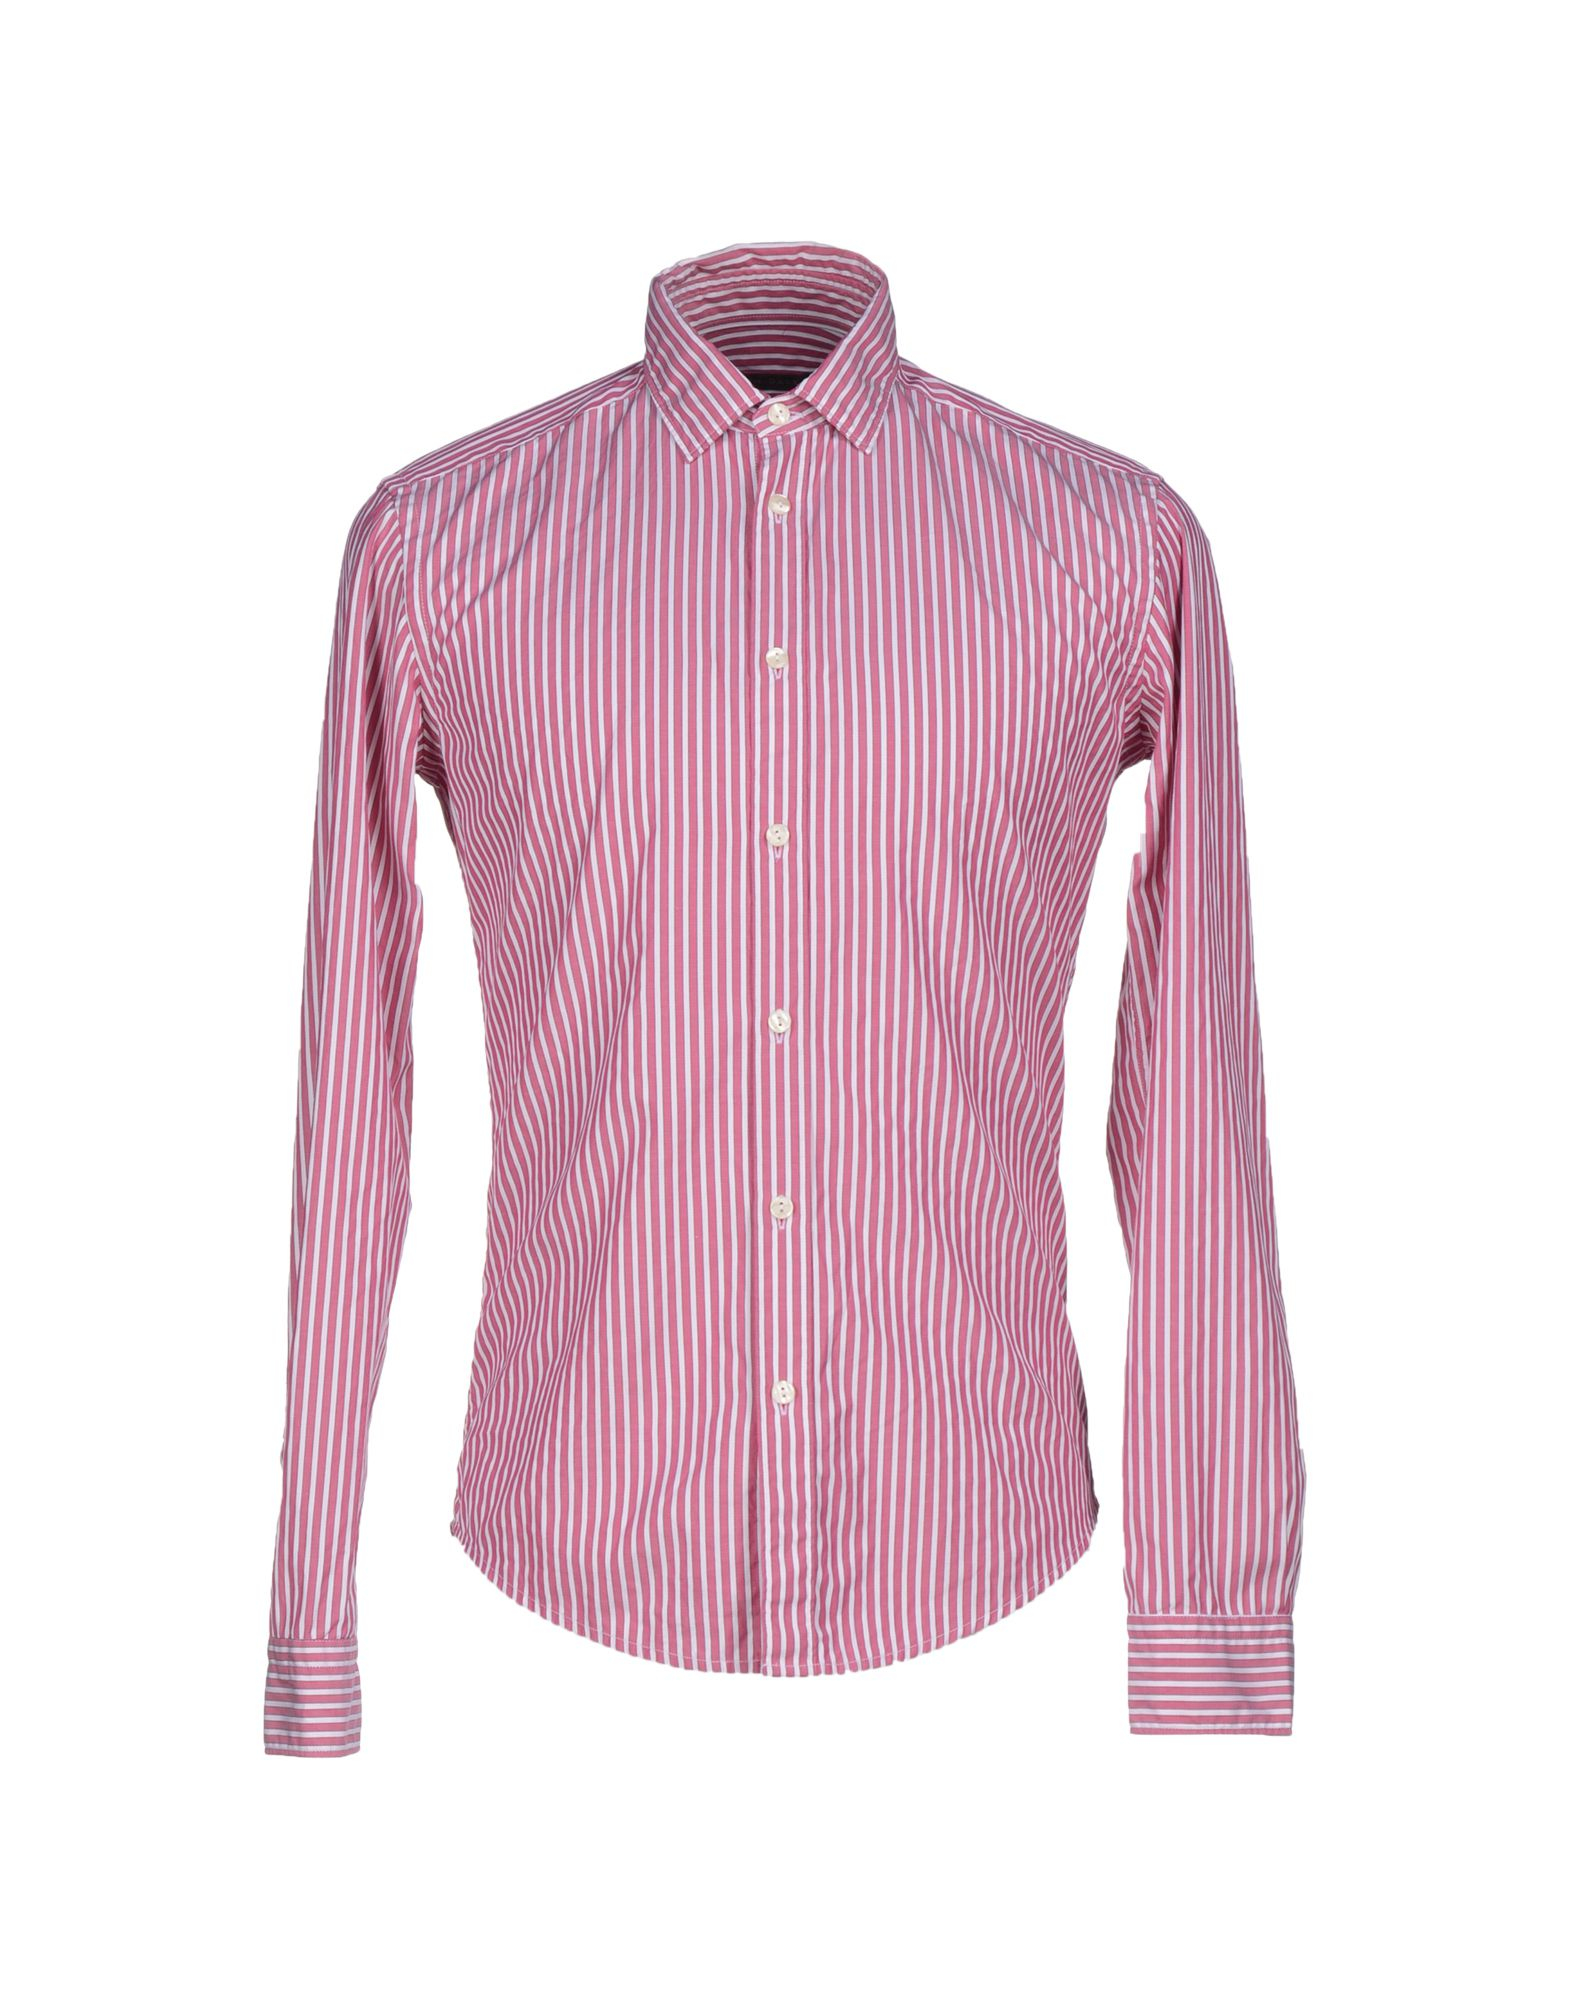 Lyst Brian Dales Shirt In Pink For Men